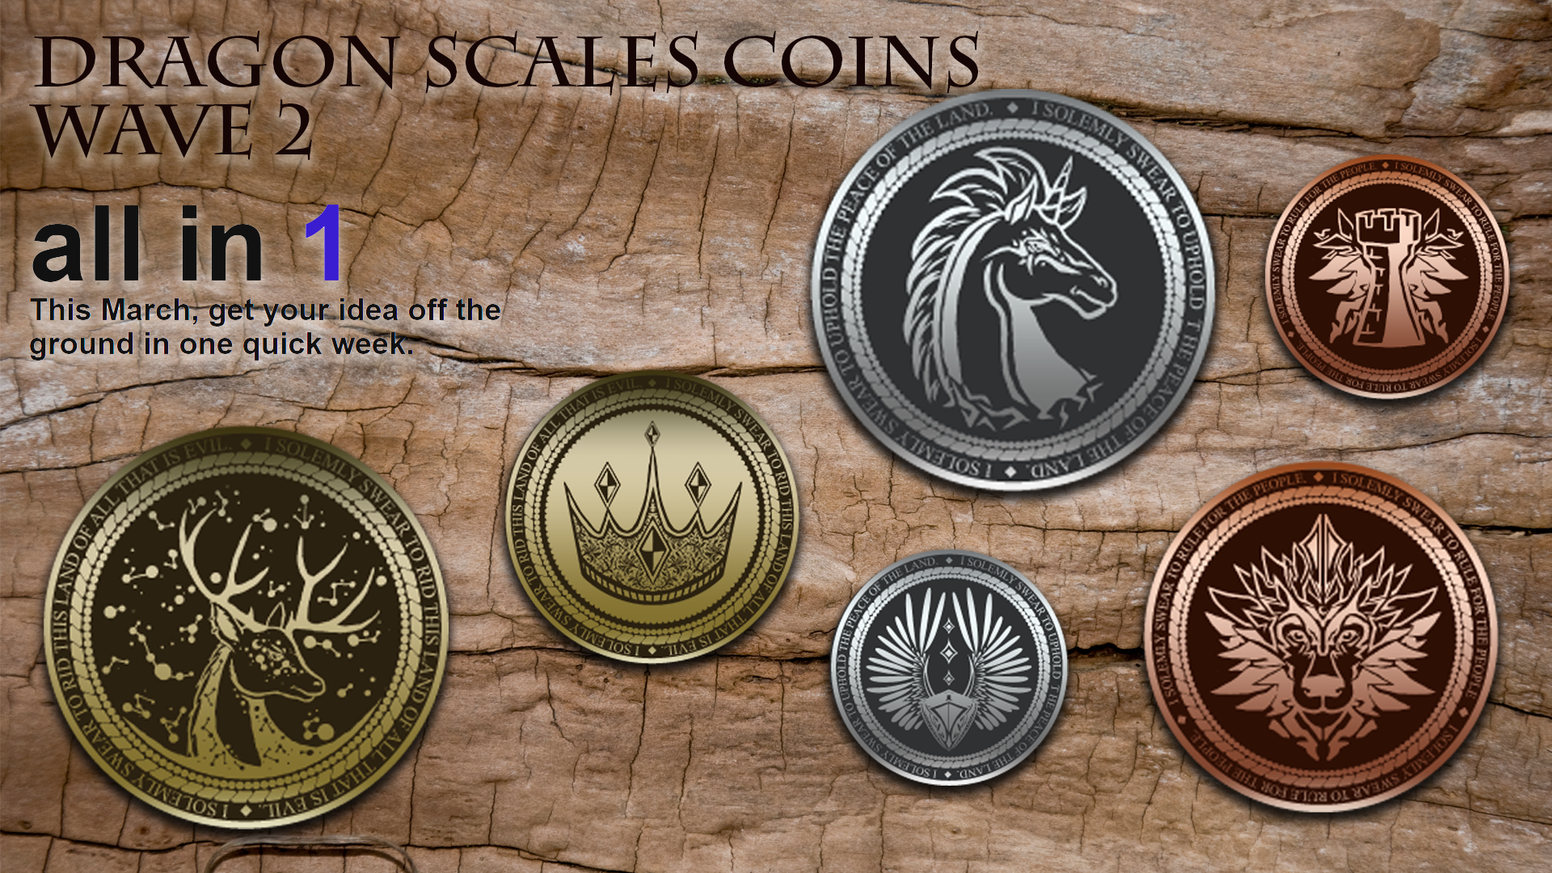 A one week project. High quality metal coins for RPG, Tabletop Games & LARP. Beautiful fantasy designs will free your imagination.